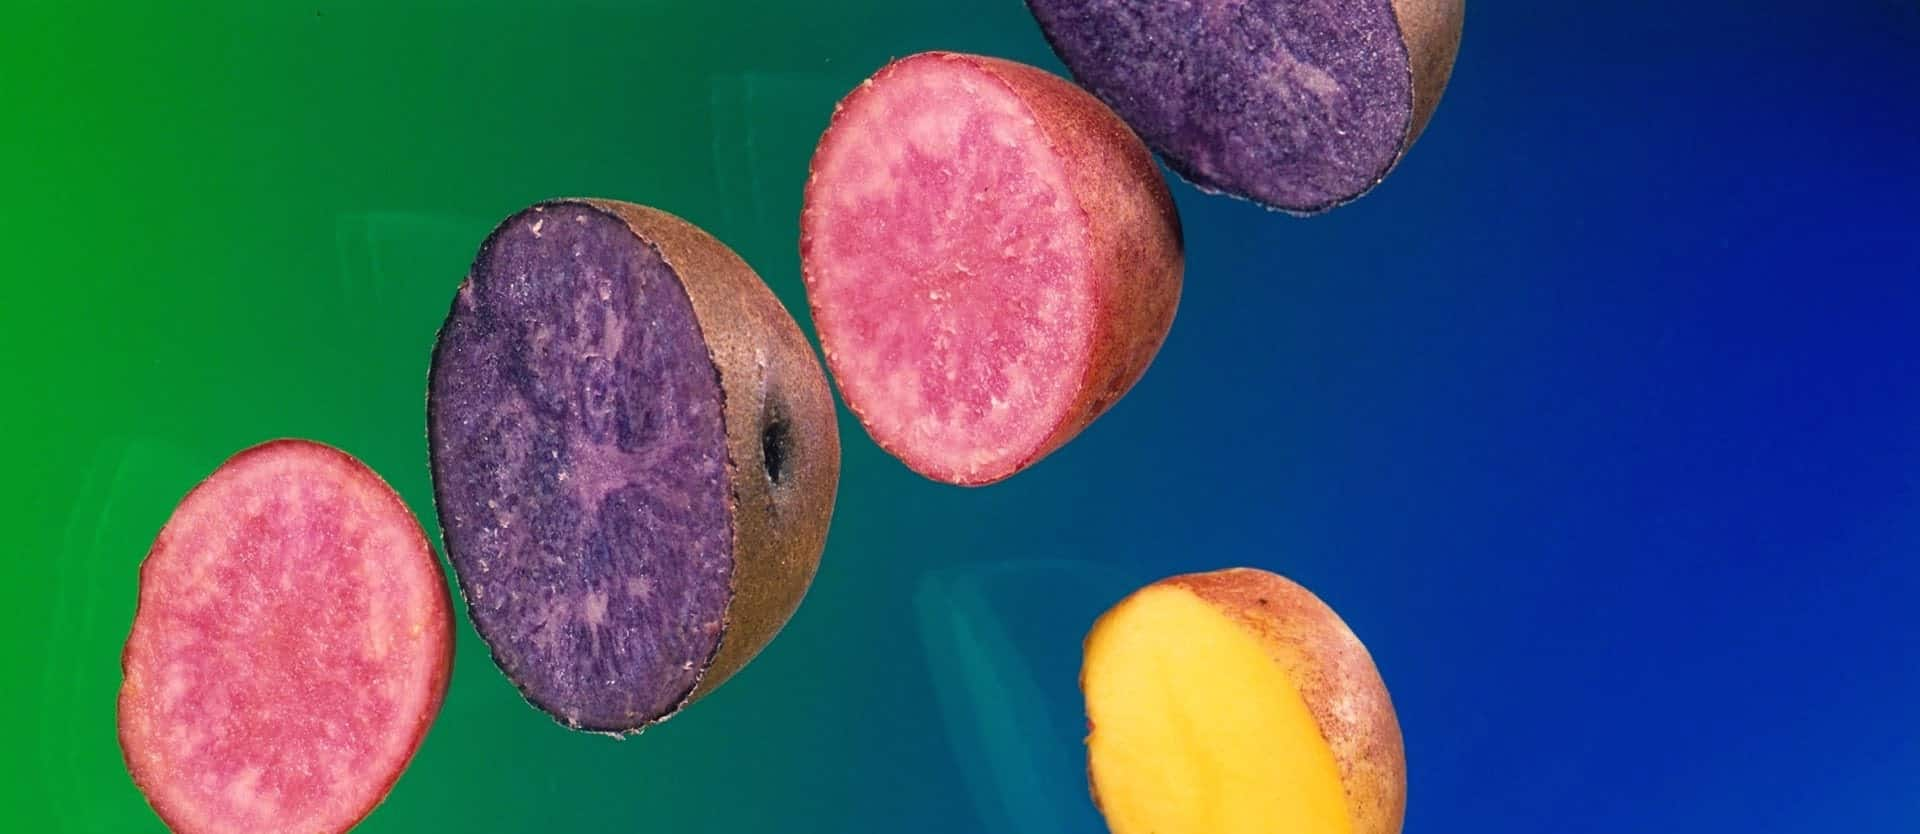 Anti-Inflammatory Effects of Purple Potatoes